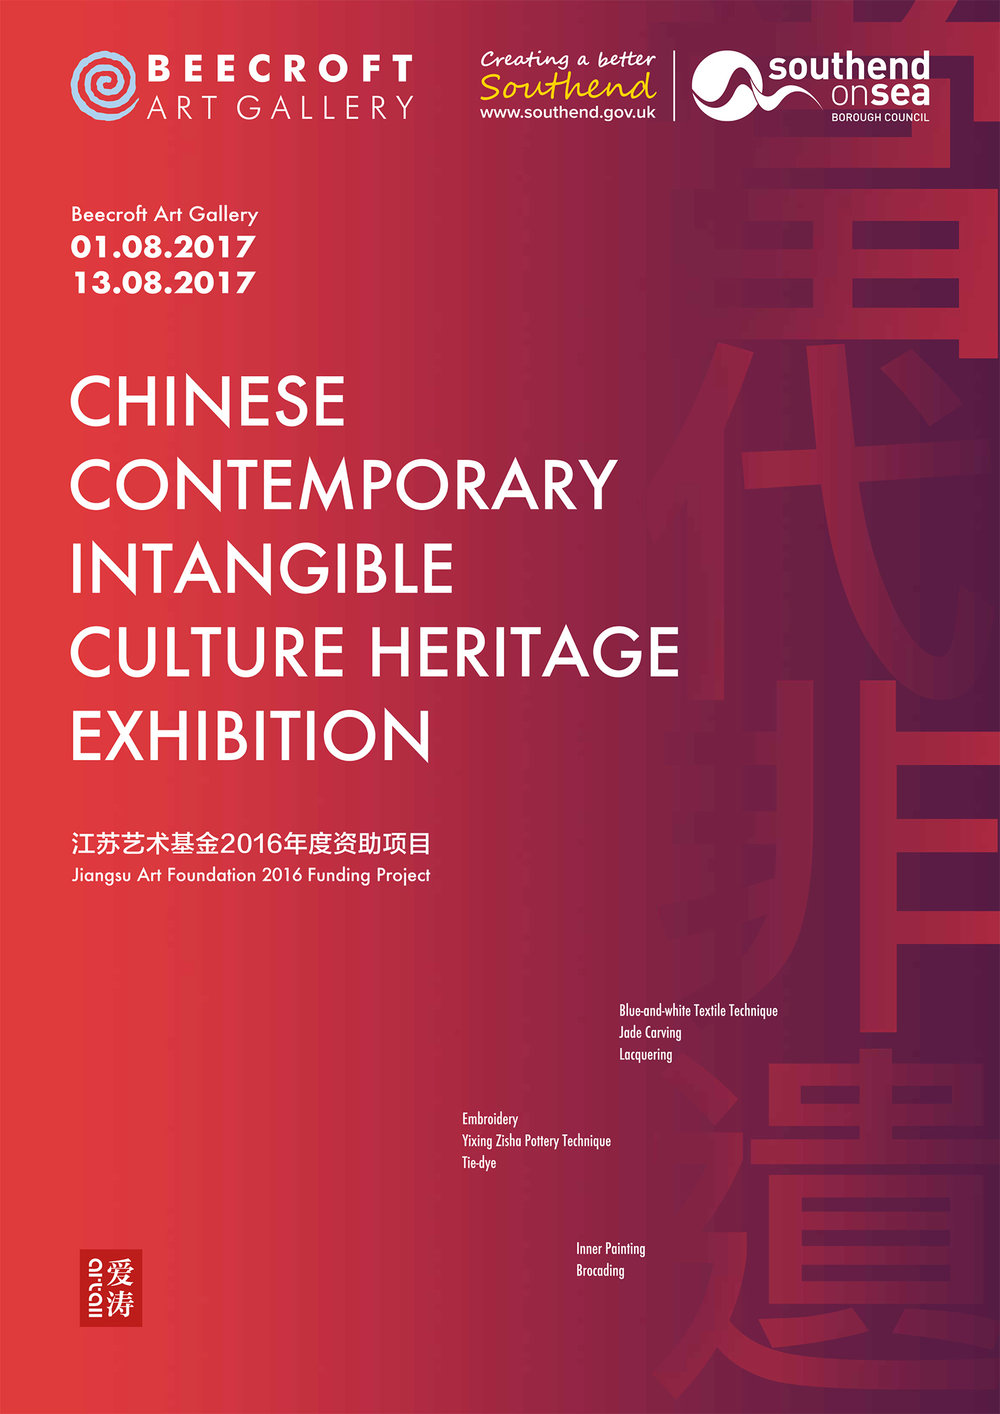 chinese-contemporary-exhibition-poster.jpg